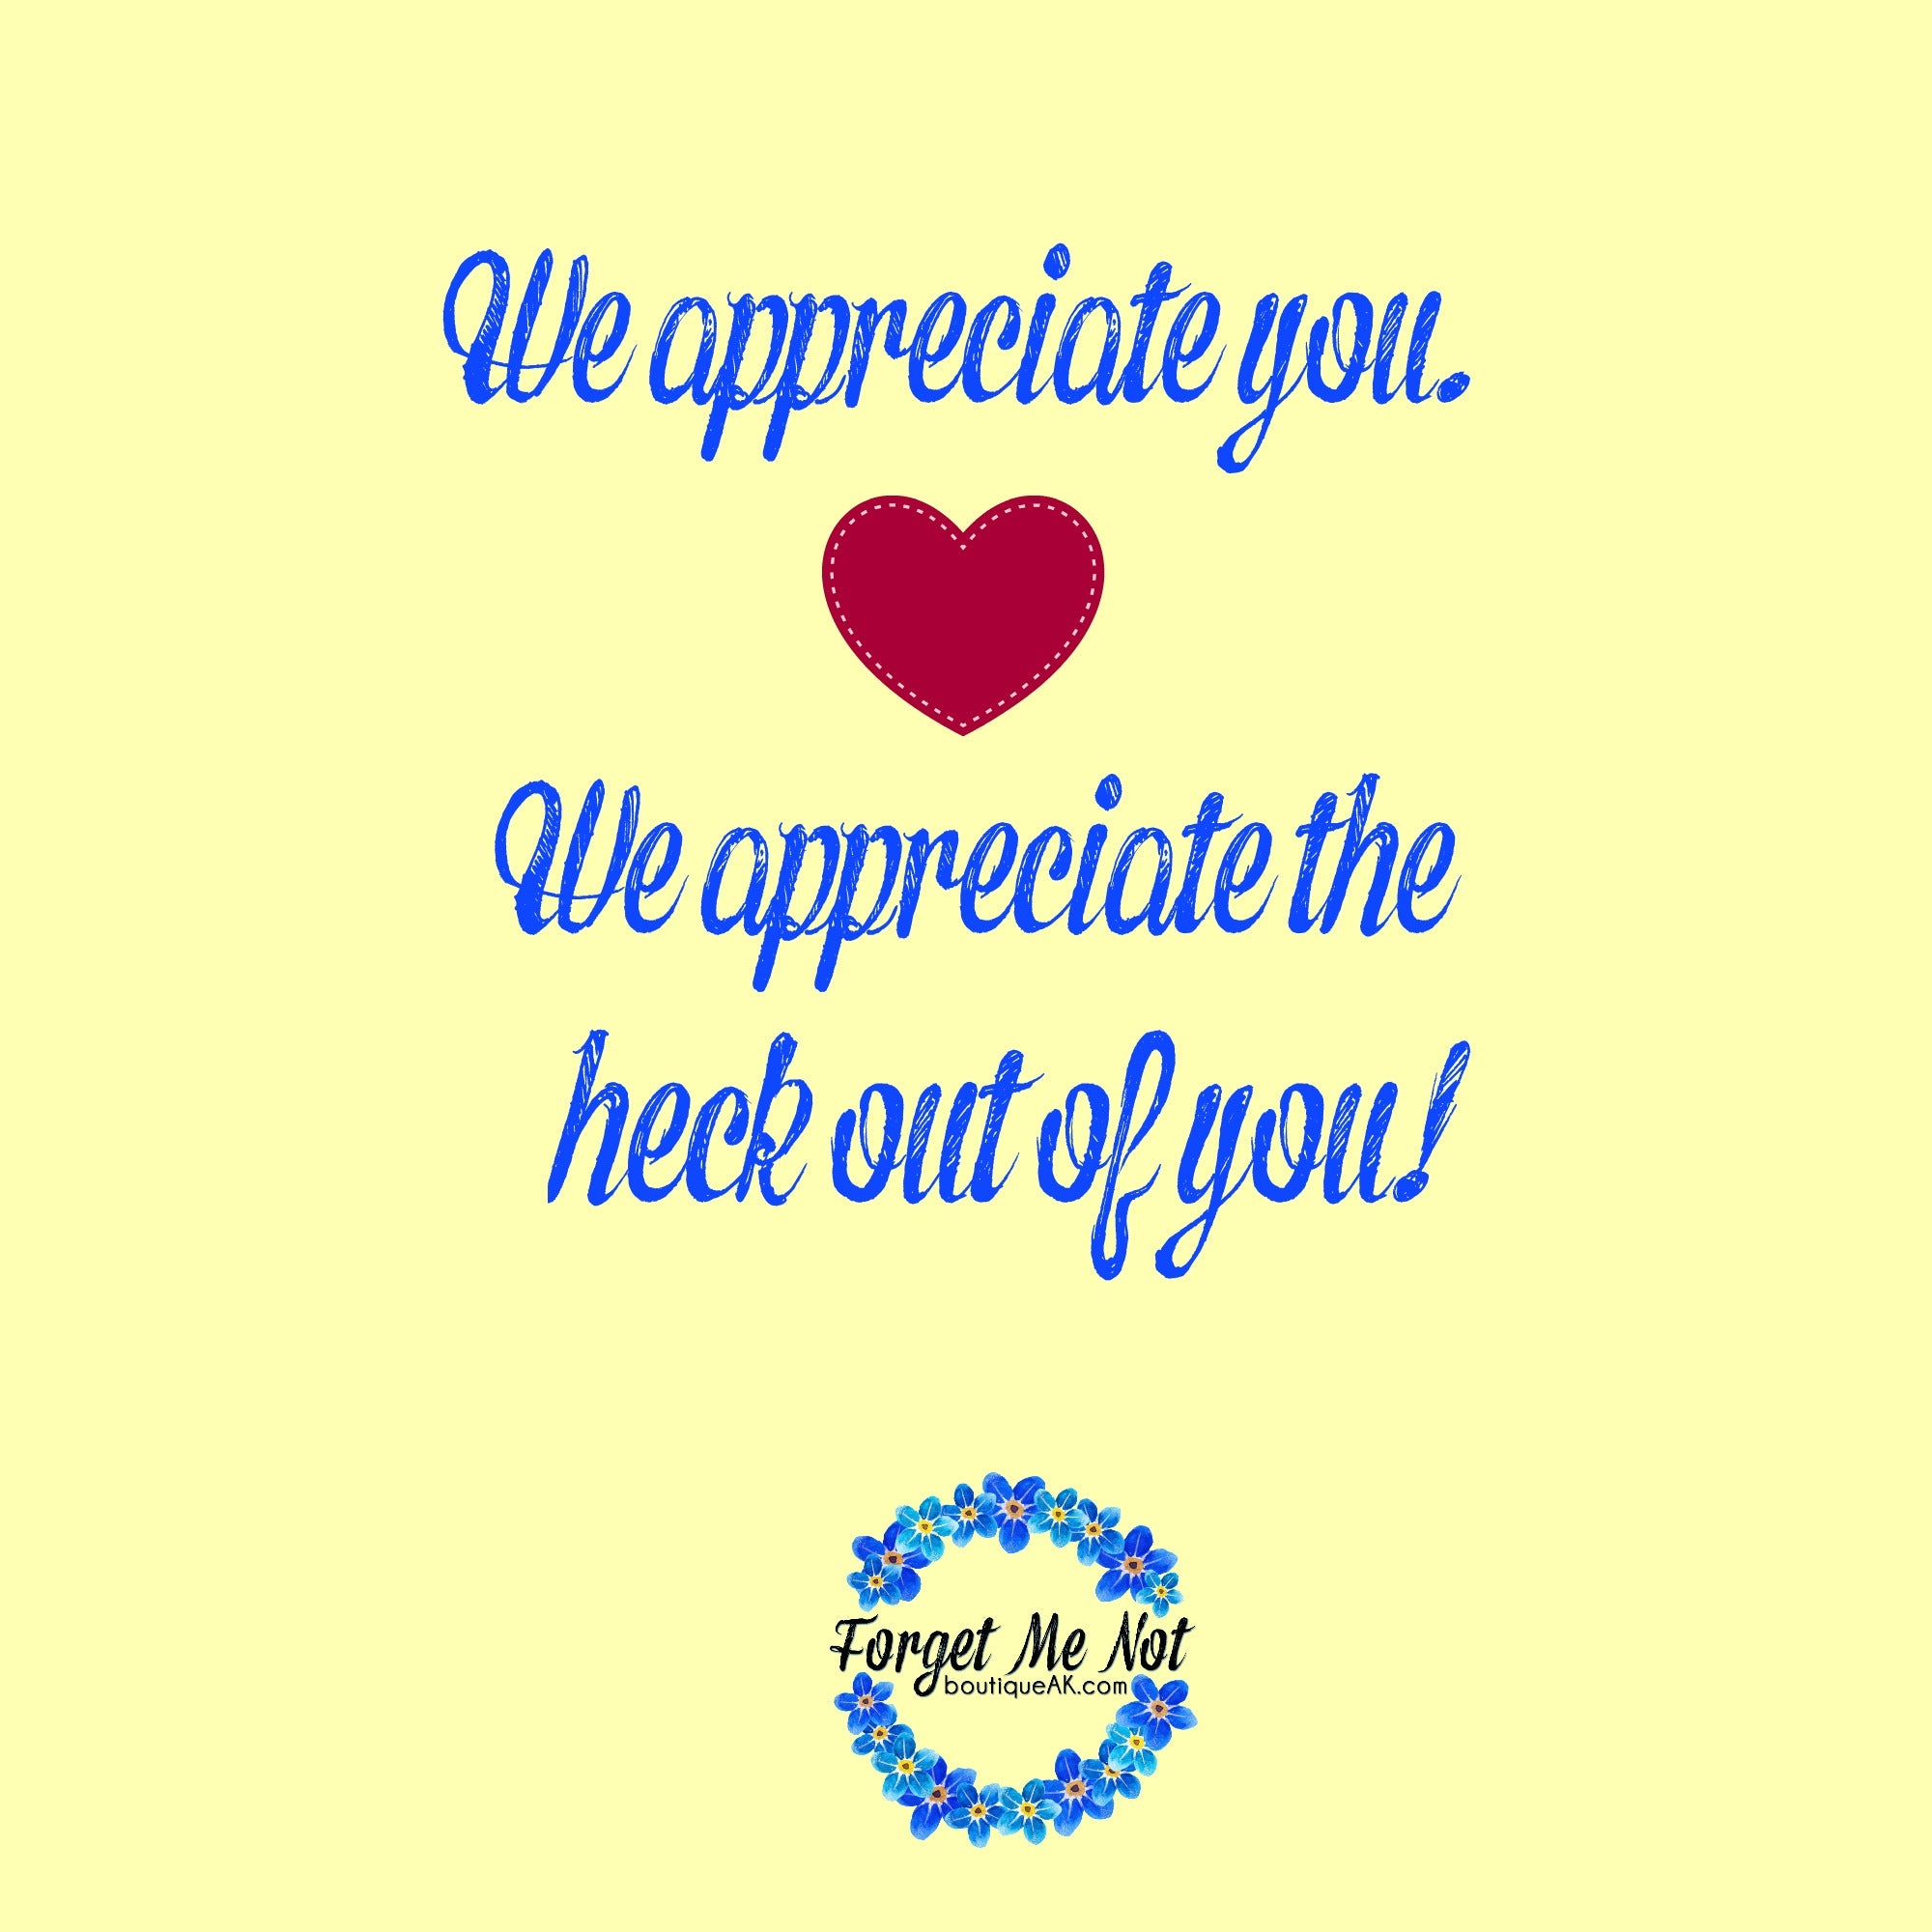 We Appreciate You. We appreciate the heck out of you!